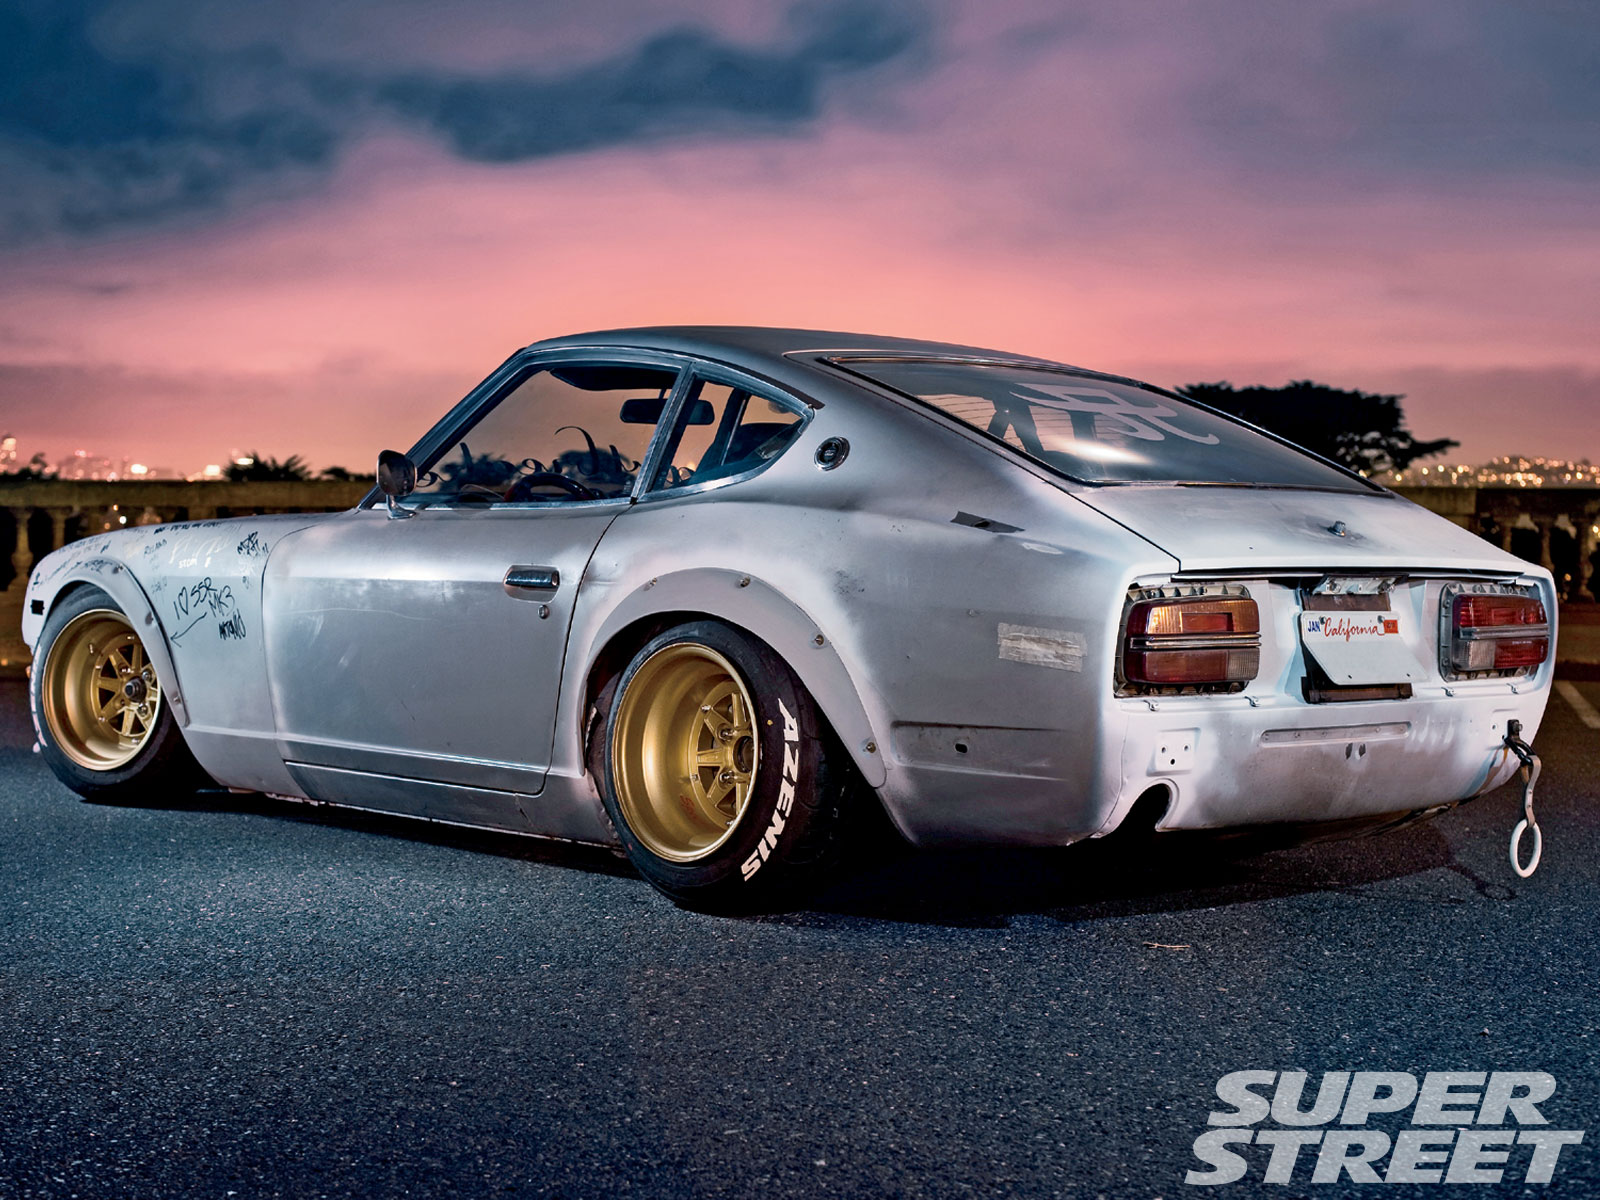 Slammed Datsun Pic Thread General Discussion Ratsun Forums